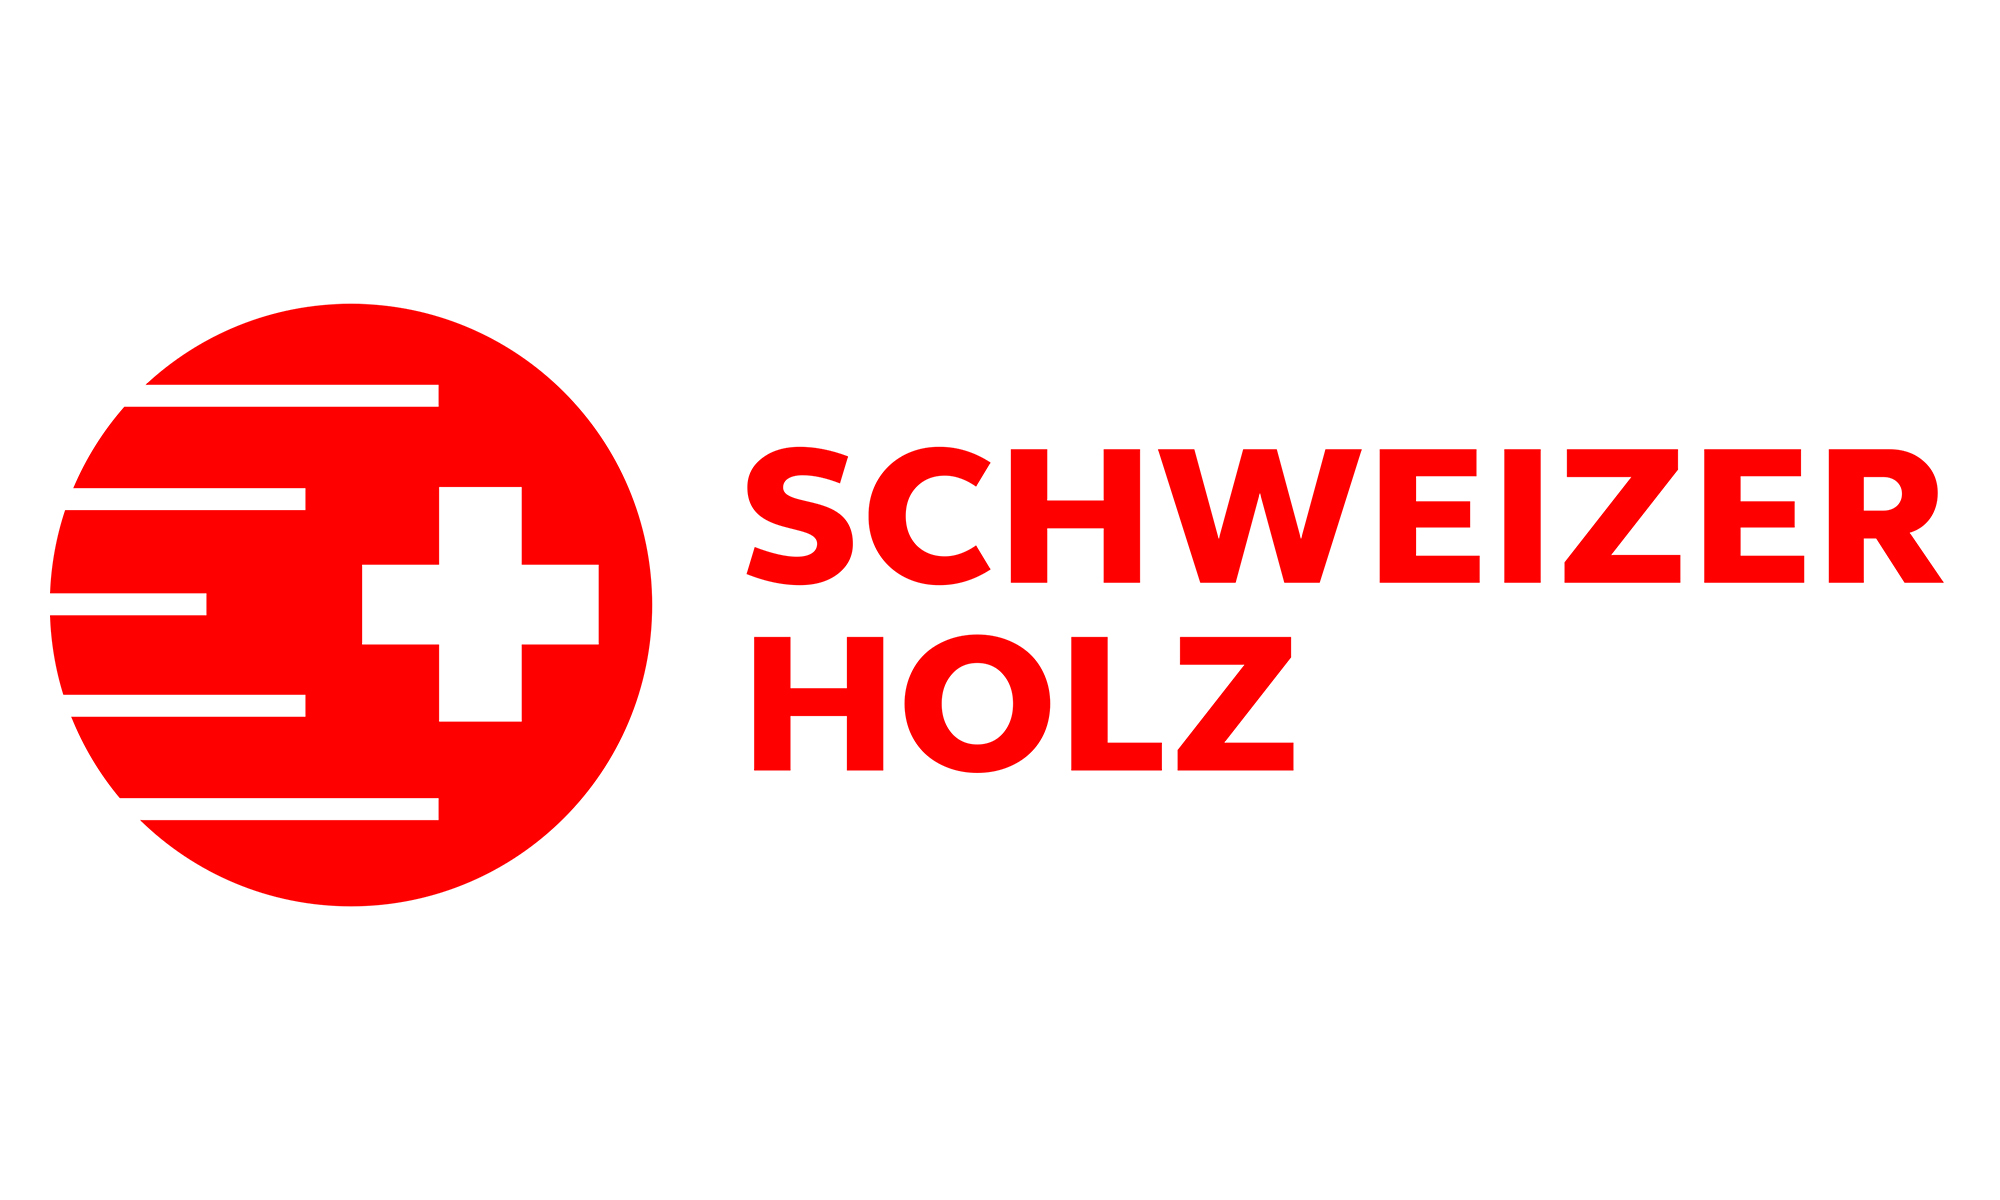 Red logo of the label Swiss wood in german